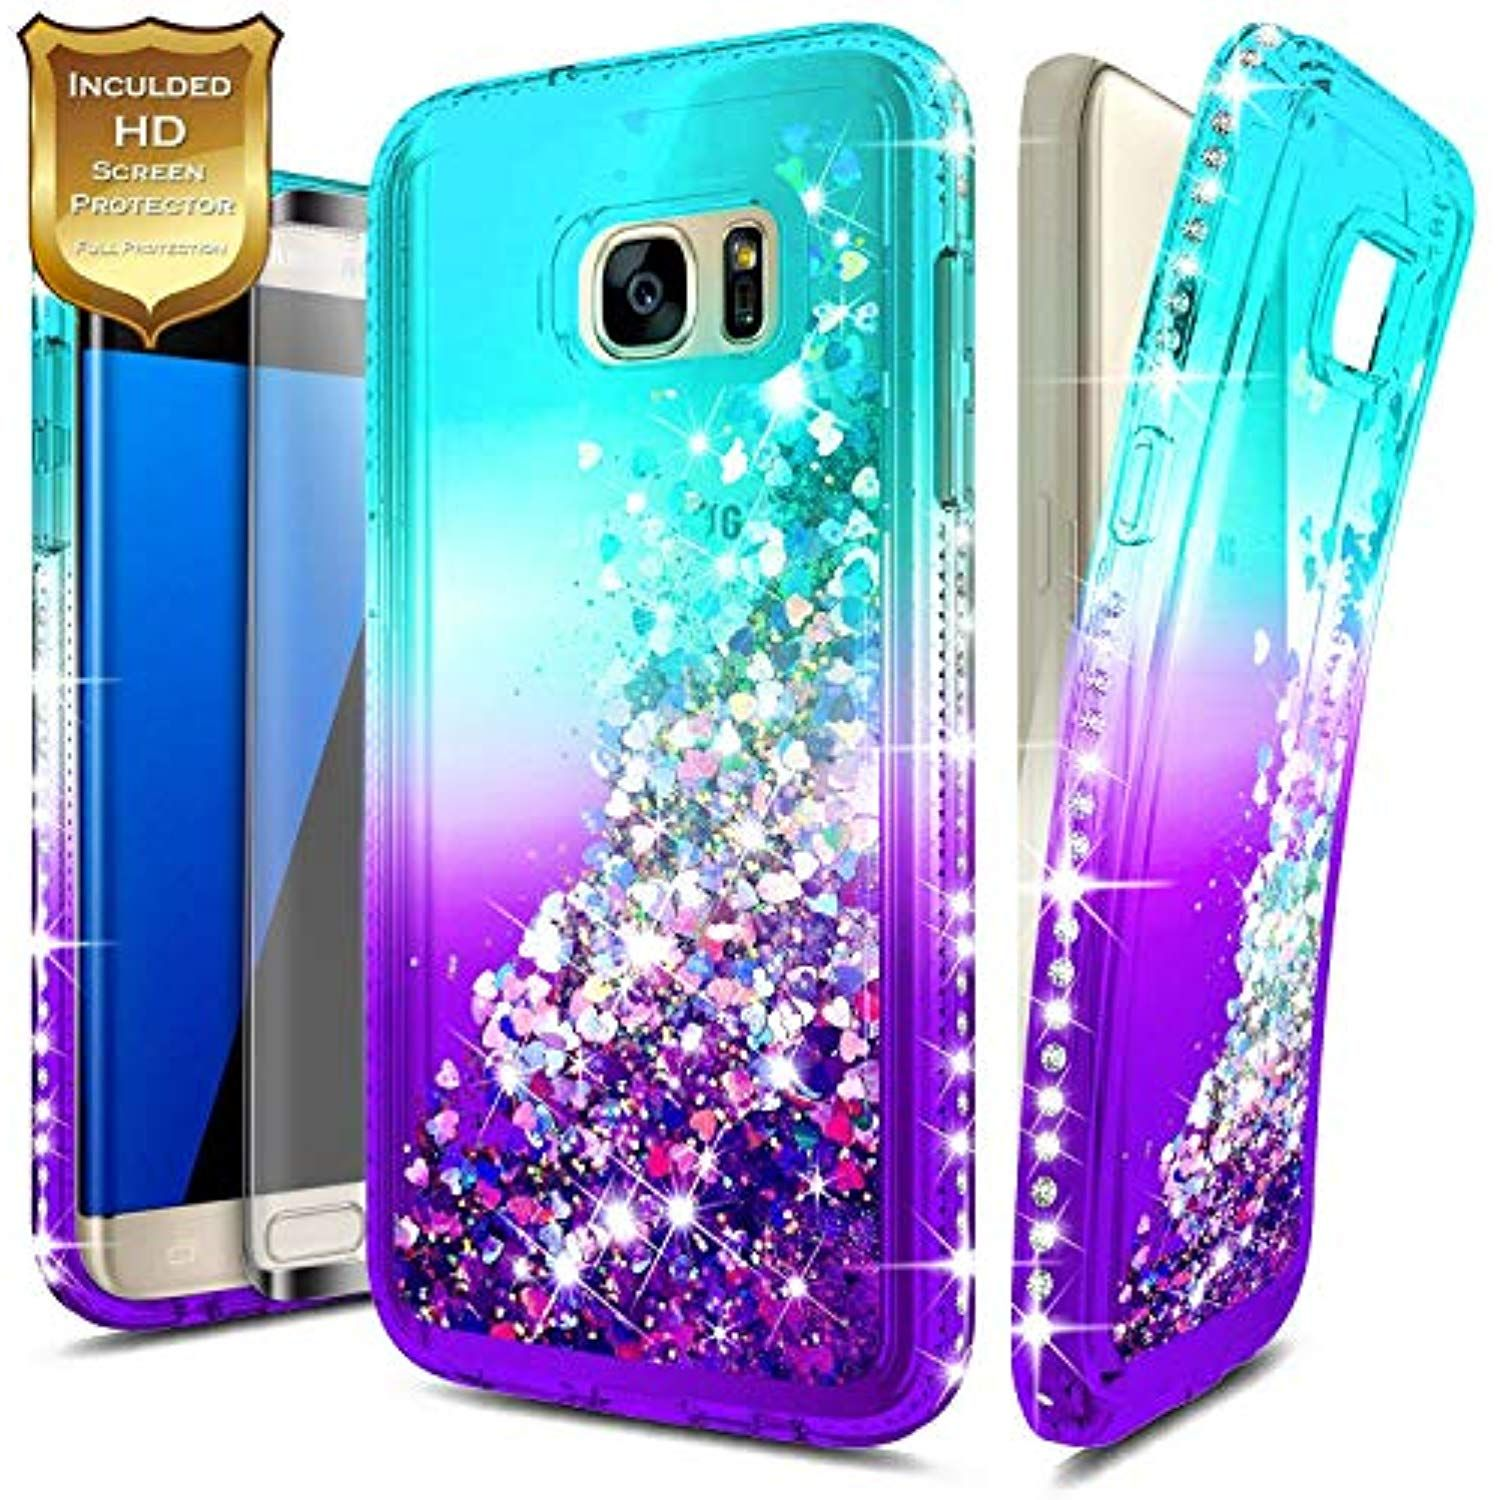 S7 Edge Case W Full Cover Screen Protector Hd Clear Nagebee Glitter Quicksand Liquid Floating Shiny Sparkle Flowing Glitter Case Glitter Iphone Case Iphone